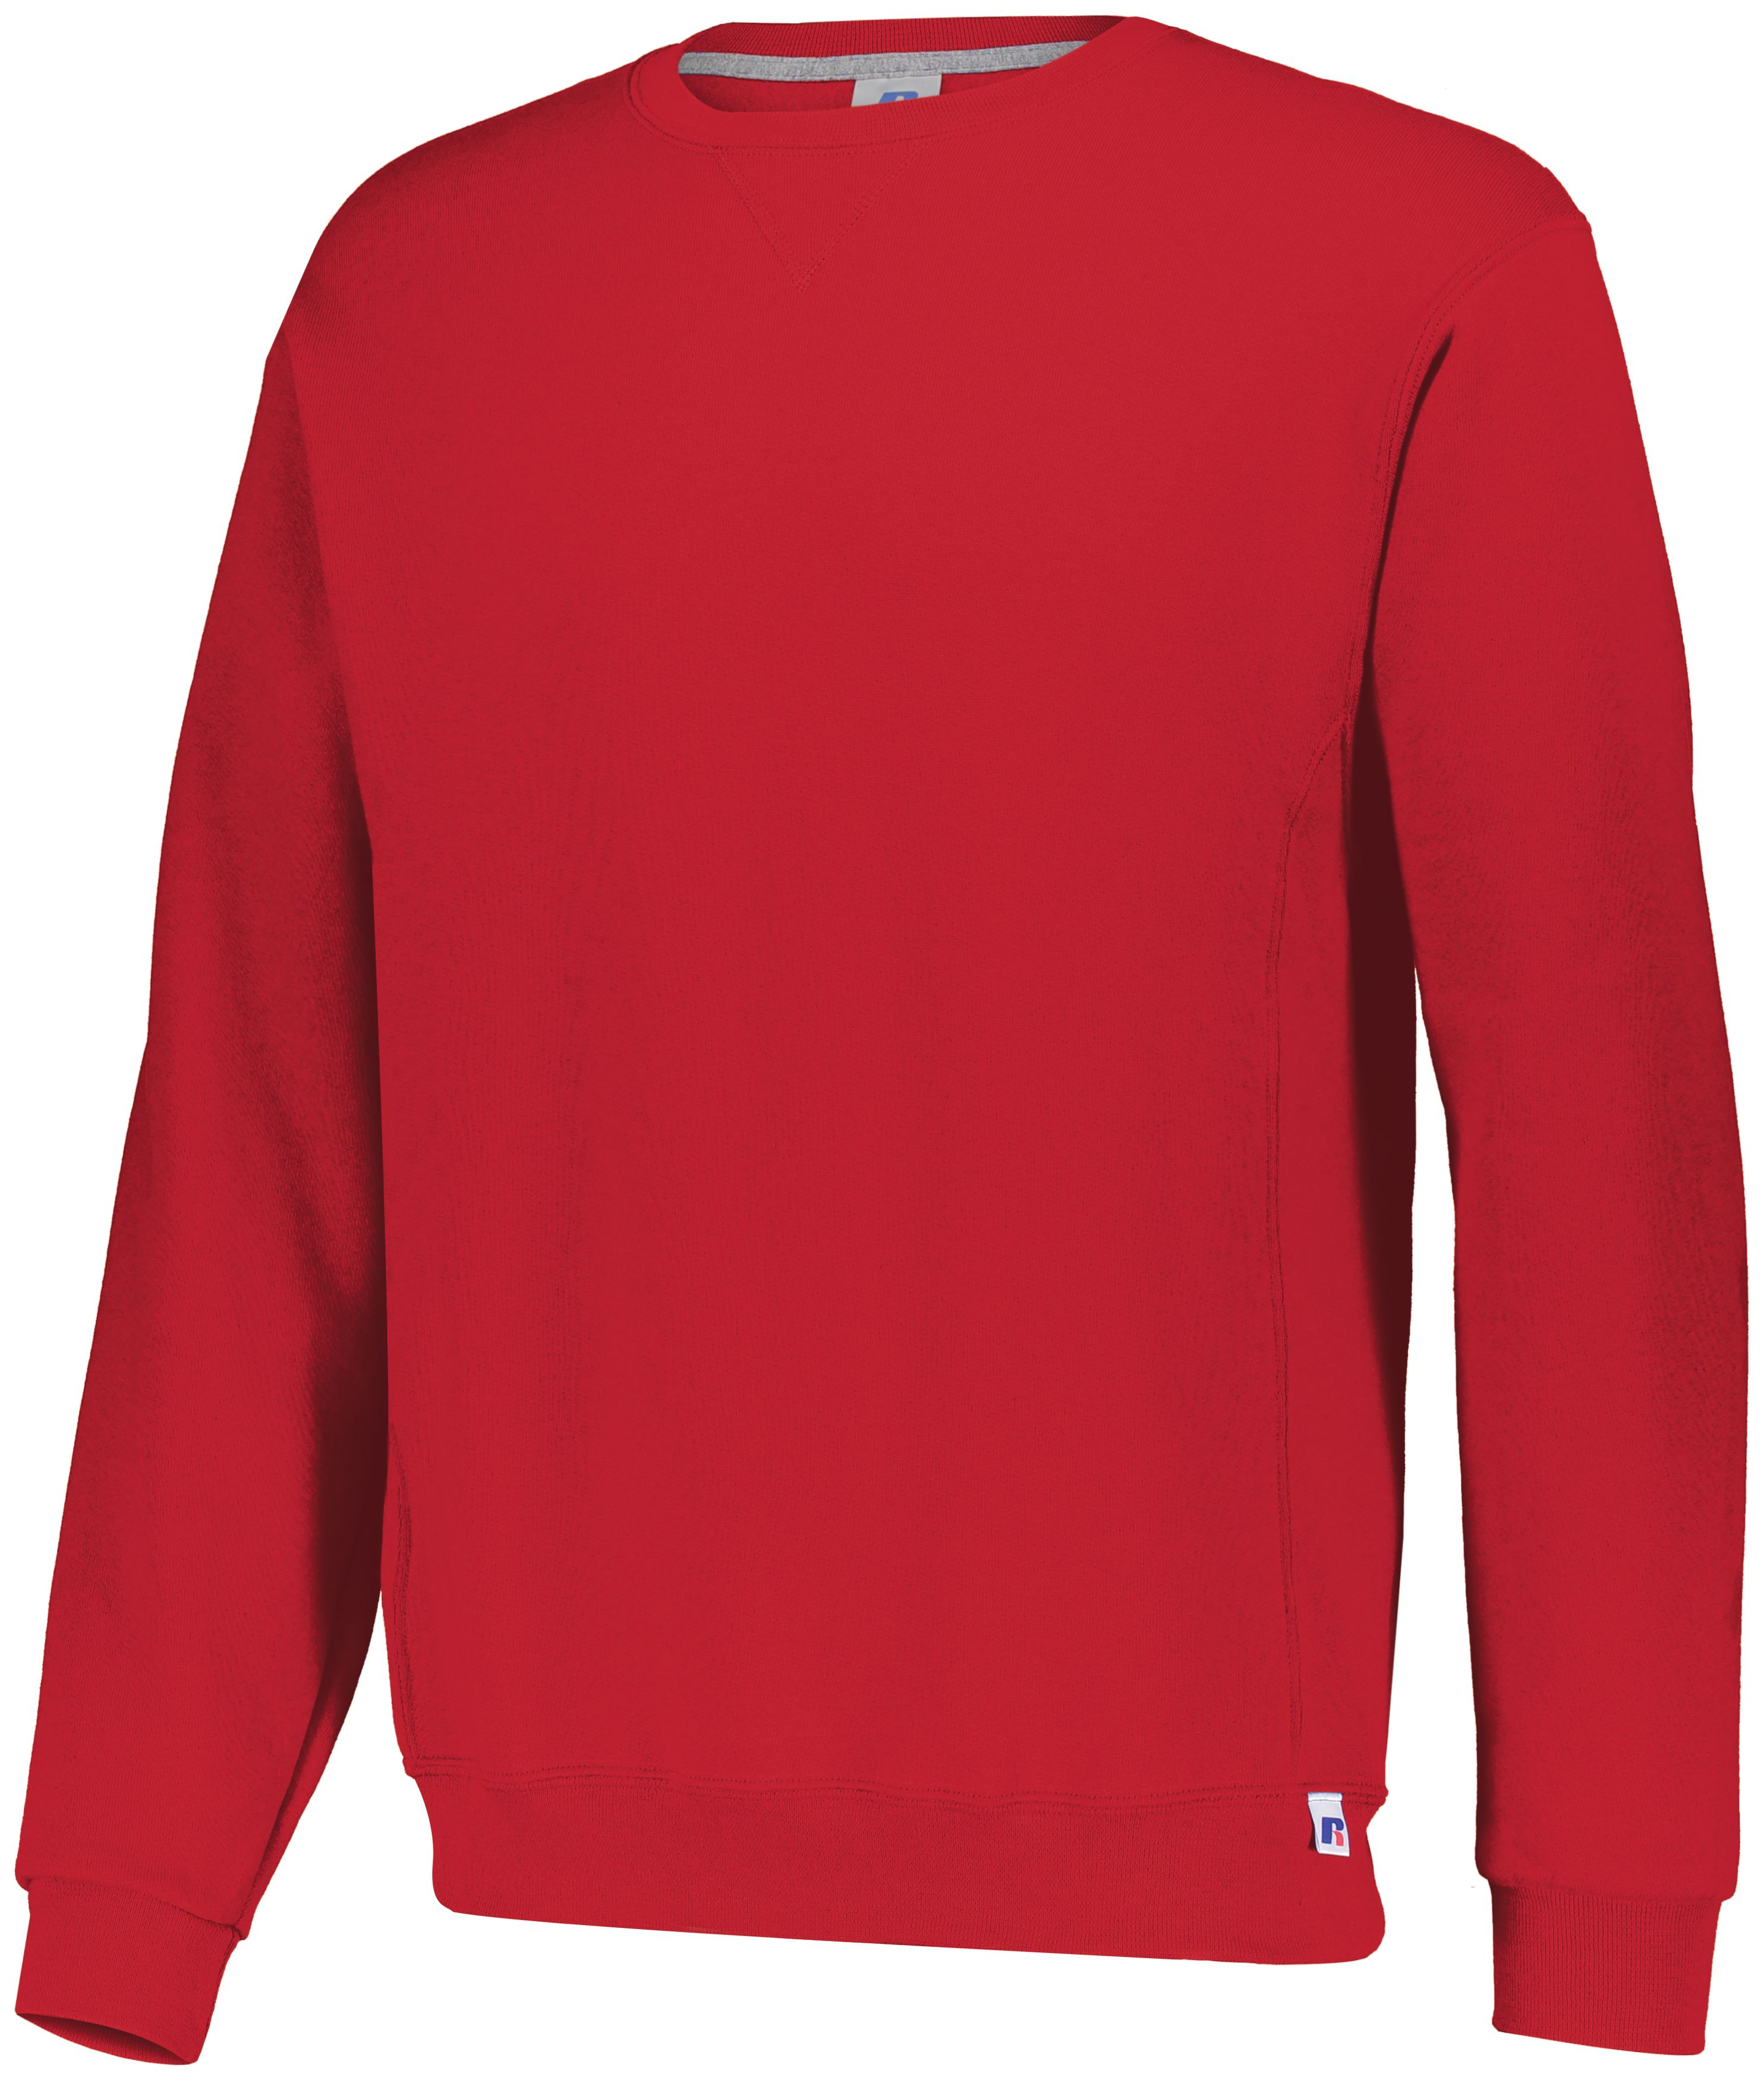 Youth Dri-Power® Fleece Crew Sweatshirt - True Red